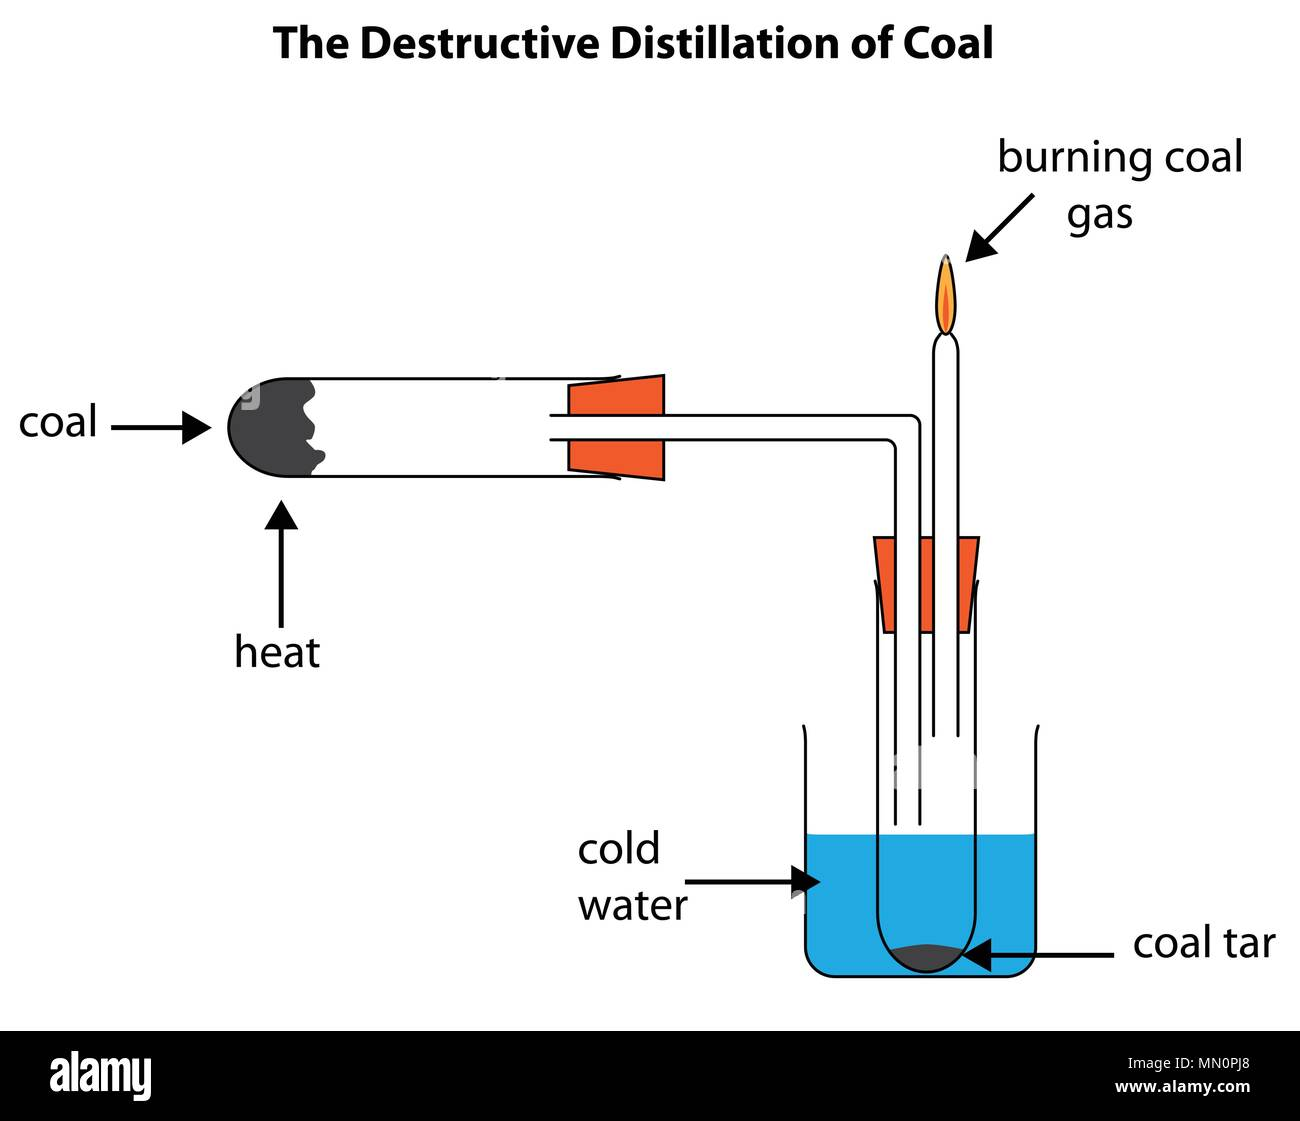 hight resolution of labelled diagram to show the destructive distillation of coal forming coal tar and coal gas